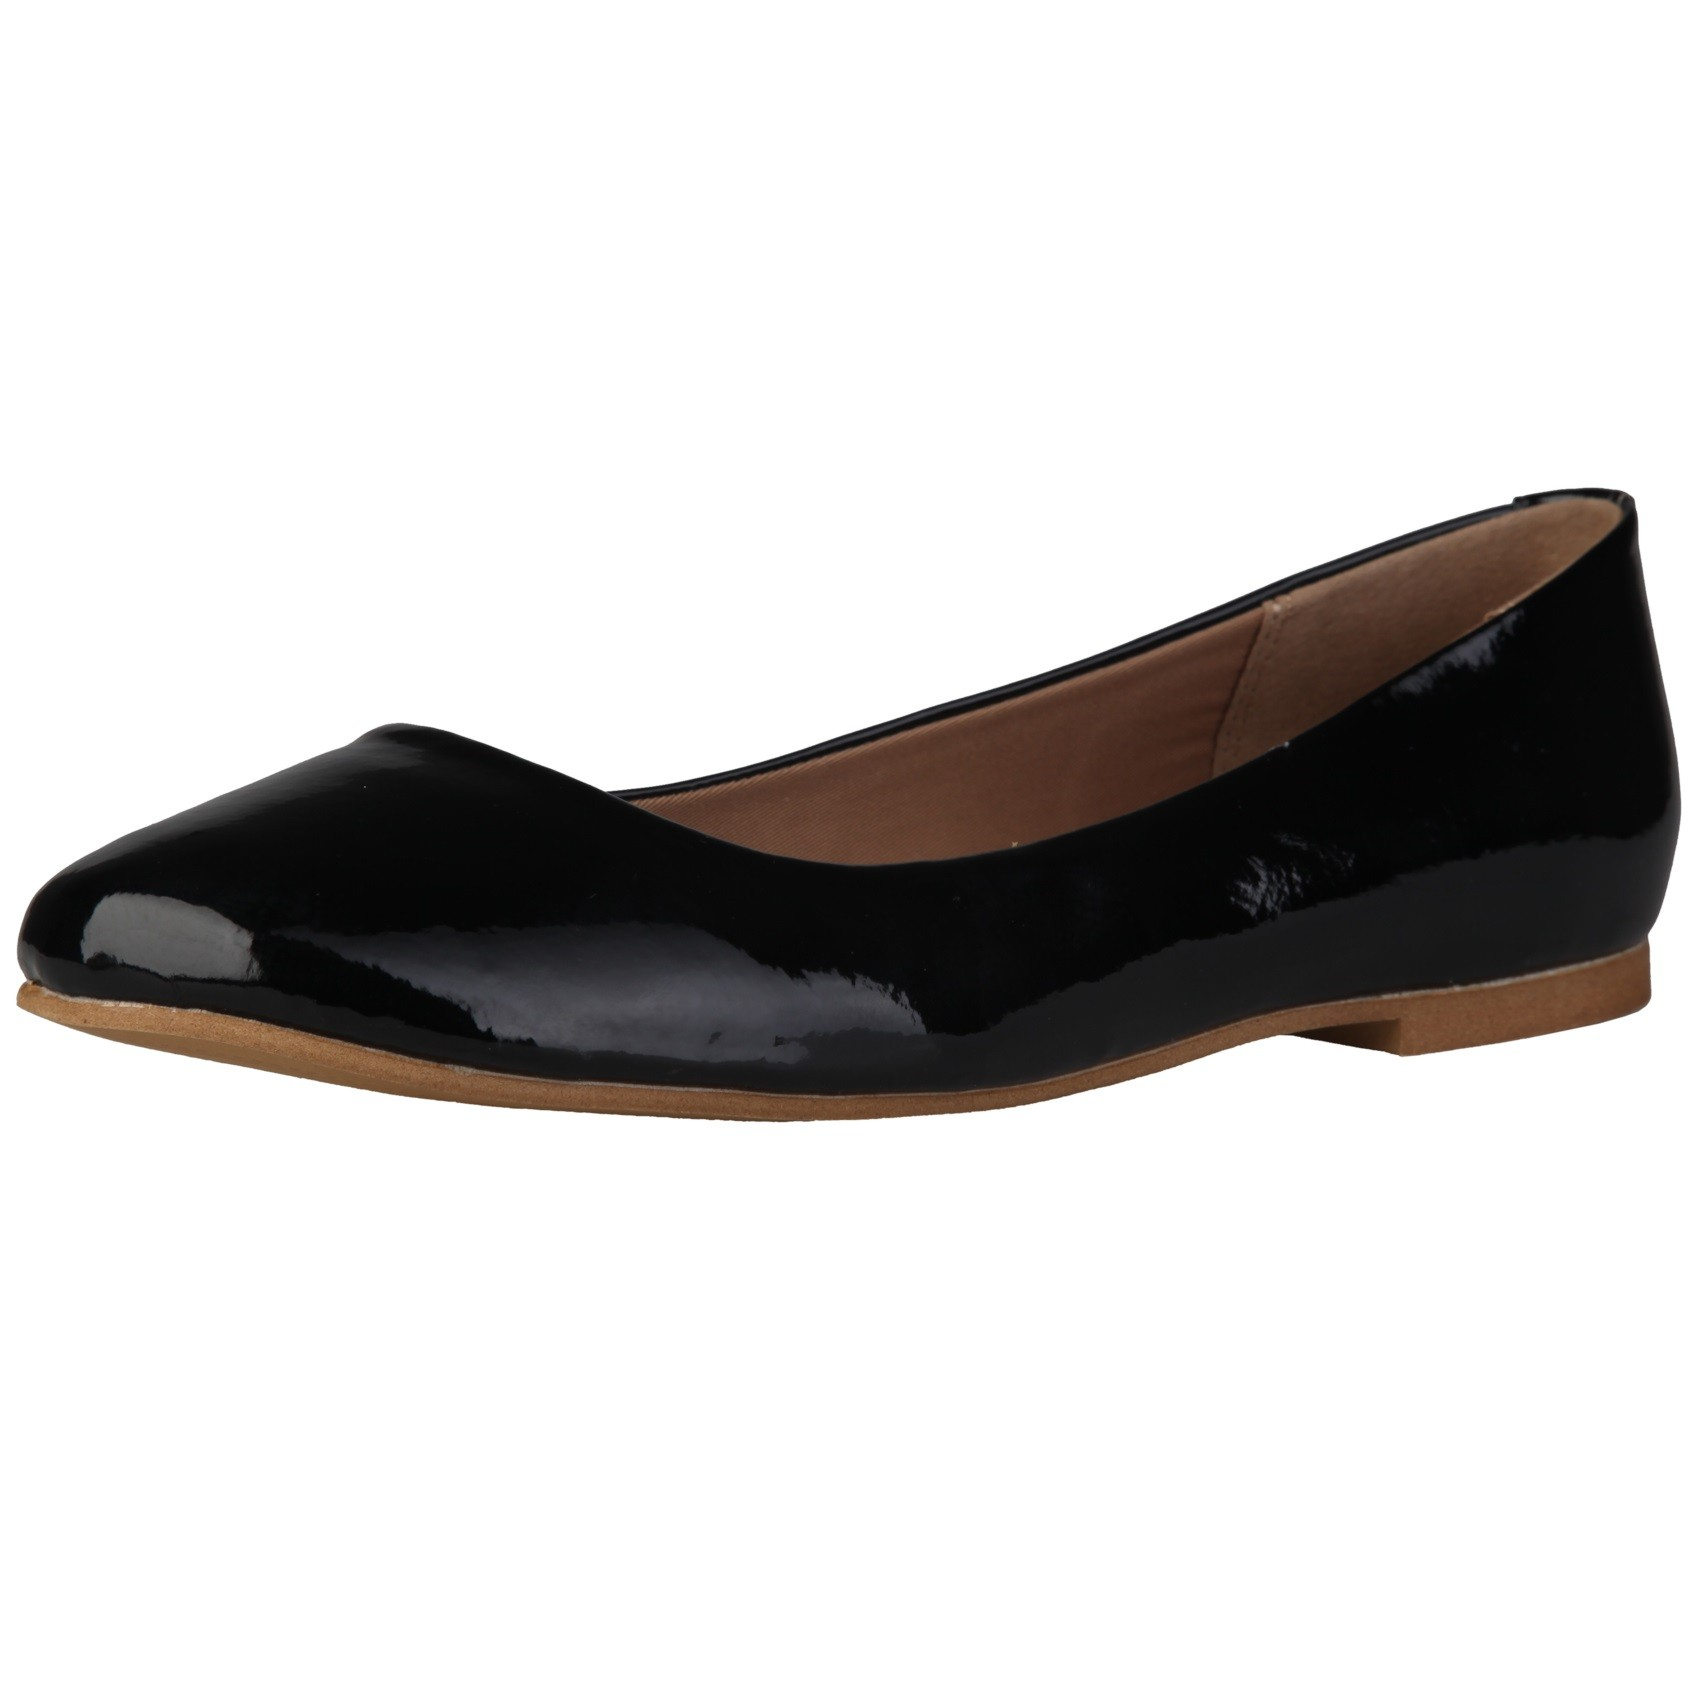 Sofia Loes Flat Shoes Black Rf600152